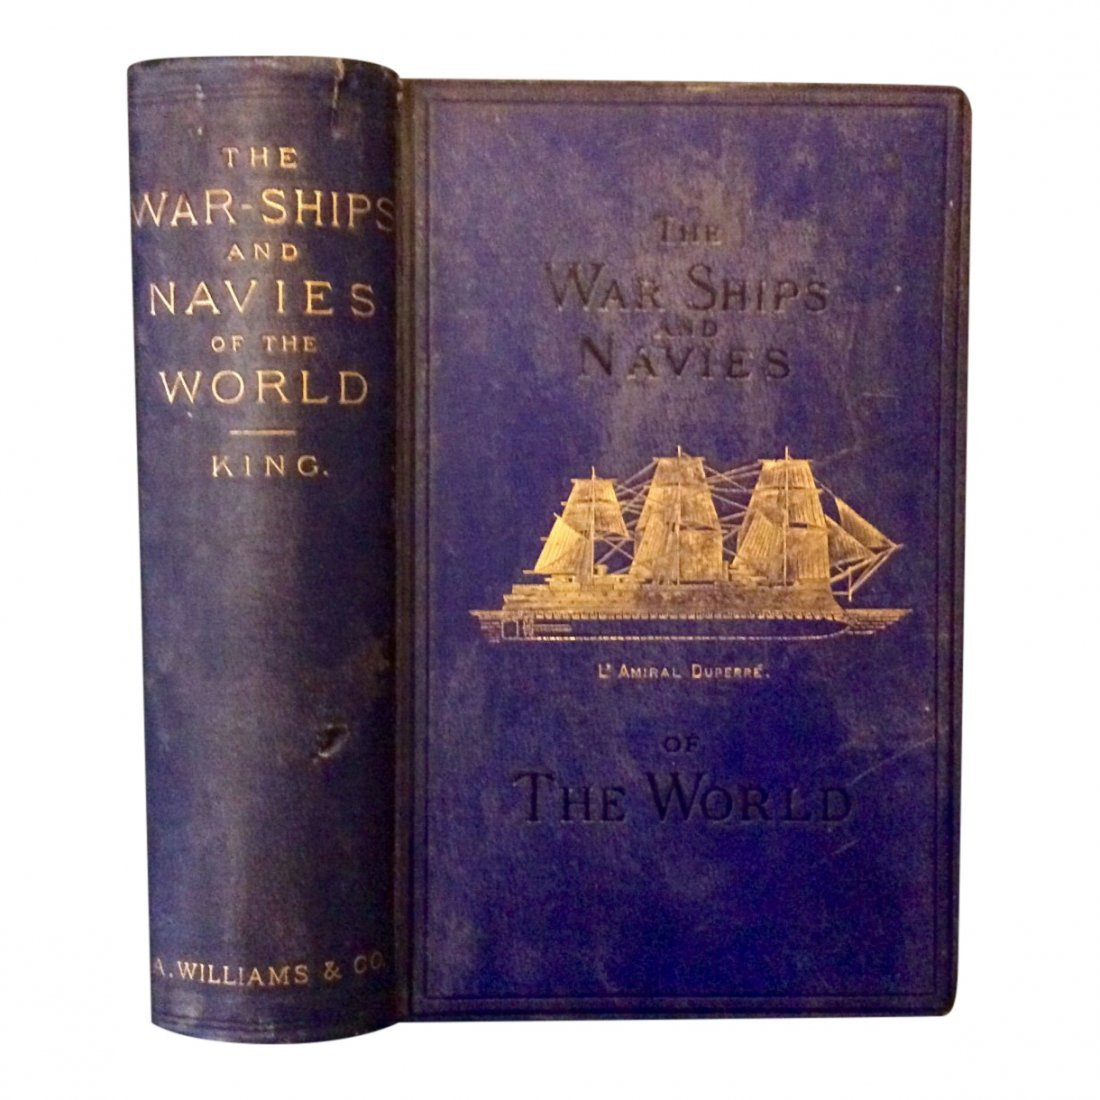 The Warships & Navies of the World, 1880